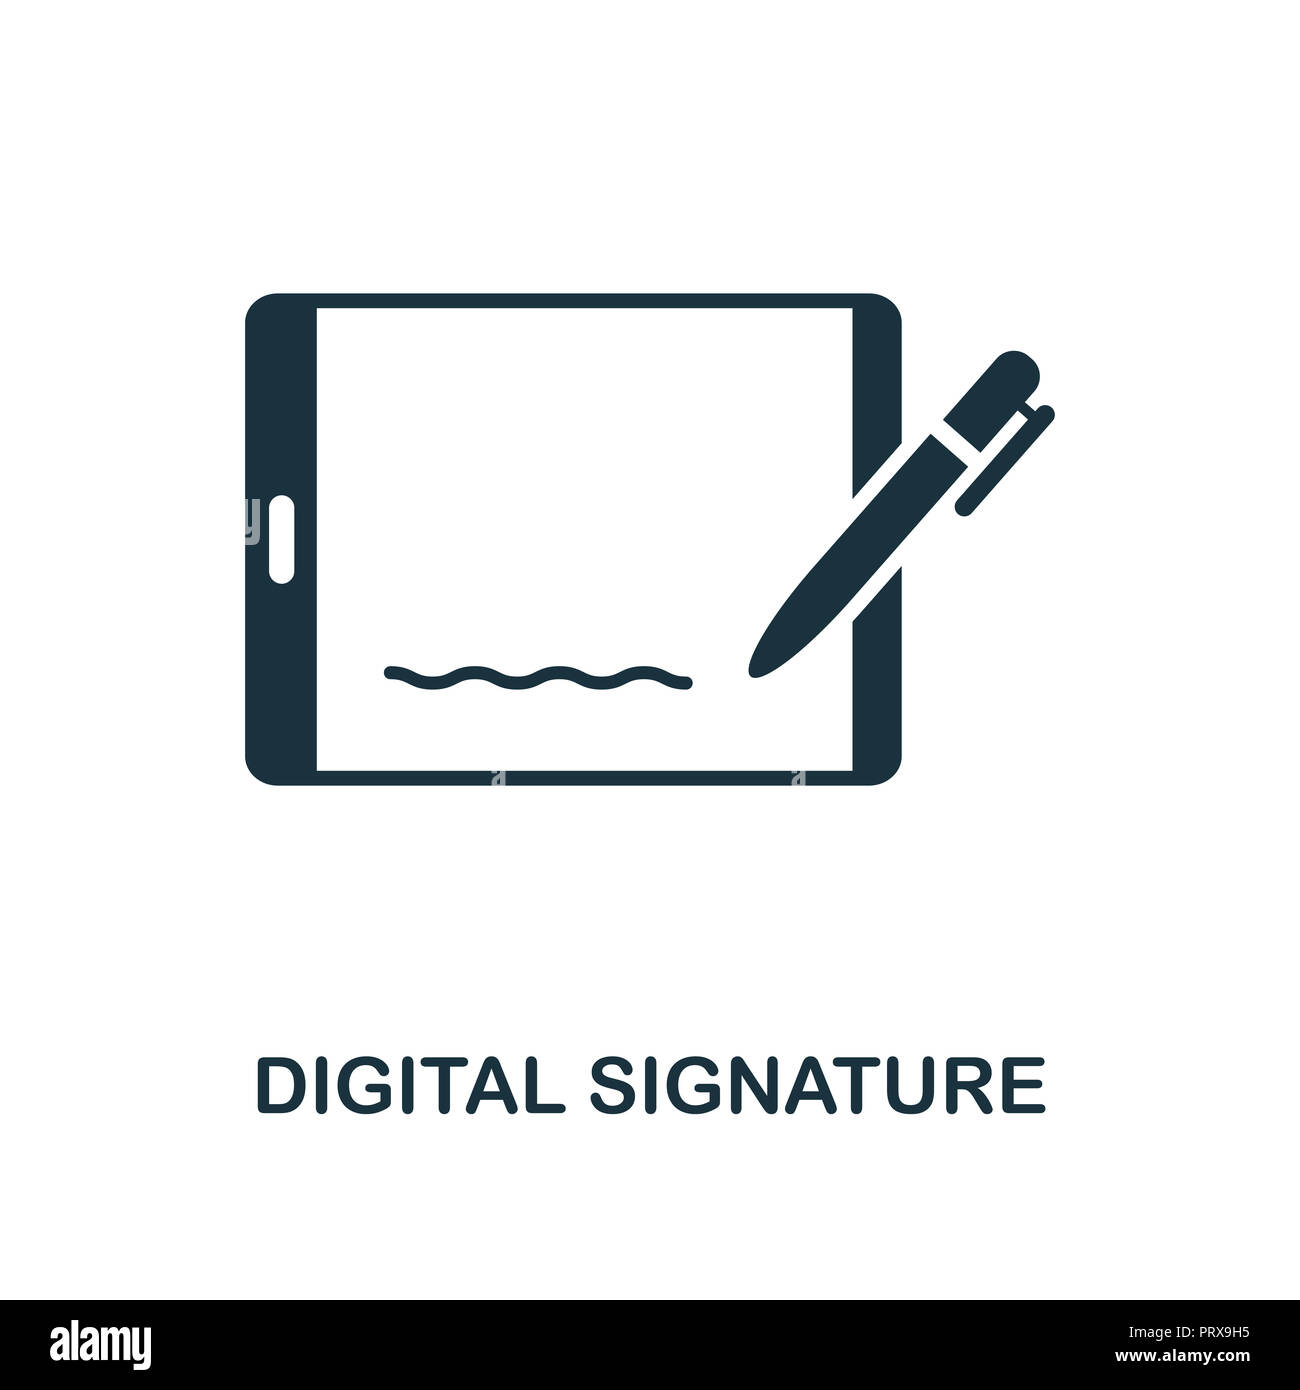 what applications use digital signatures